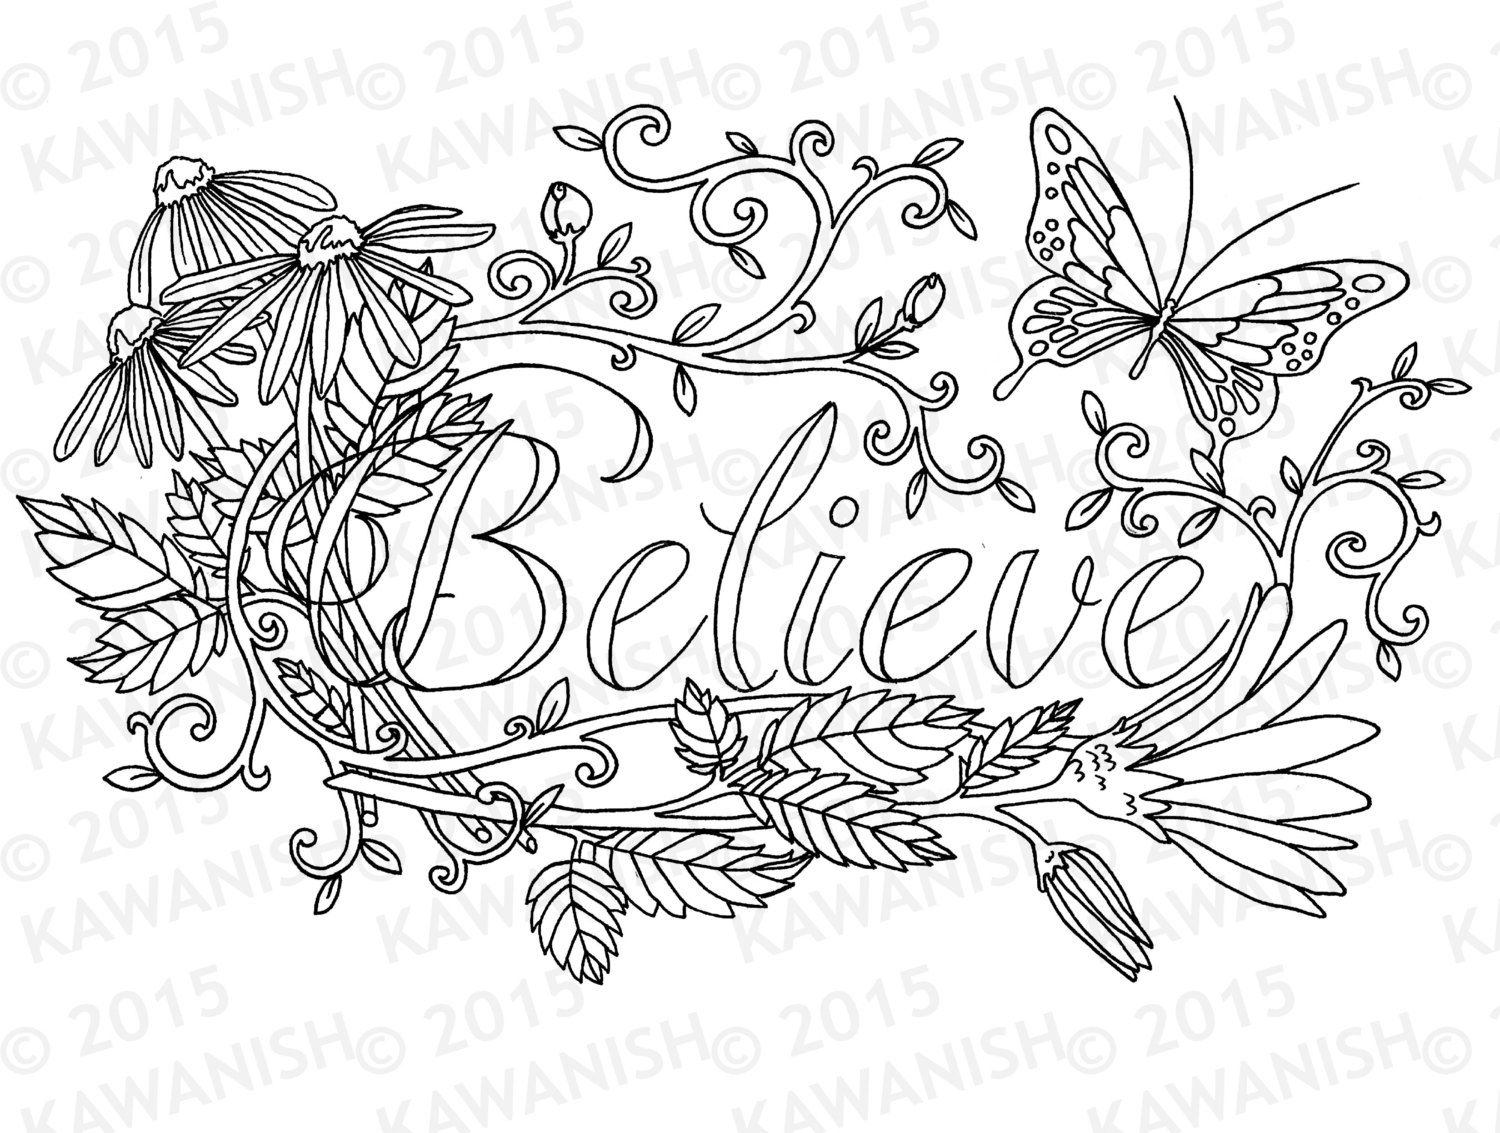 Free printable coloring pages for grown ups - Believe Flower Inspirational Adult Coloring Page Gift By Kawanish